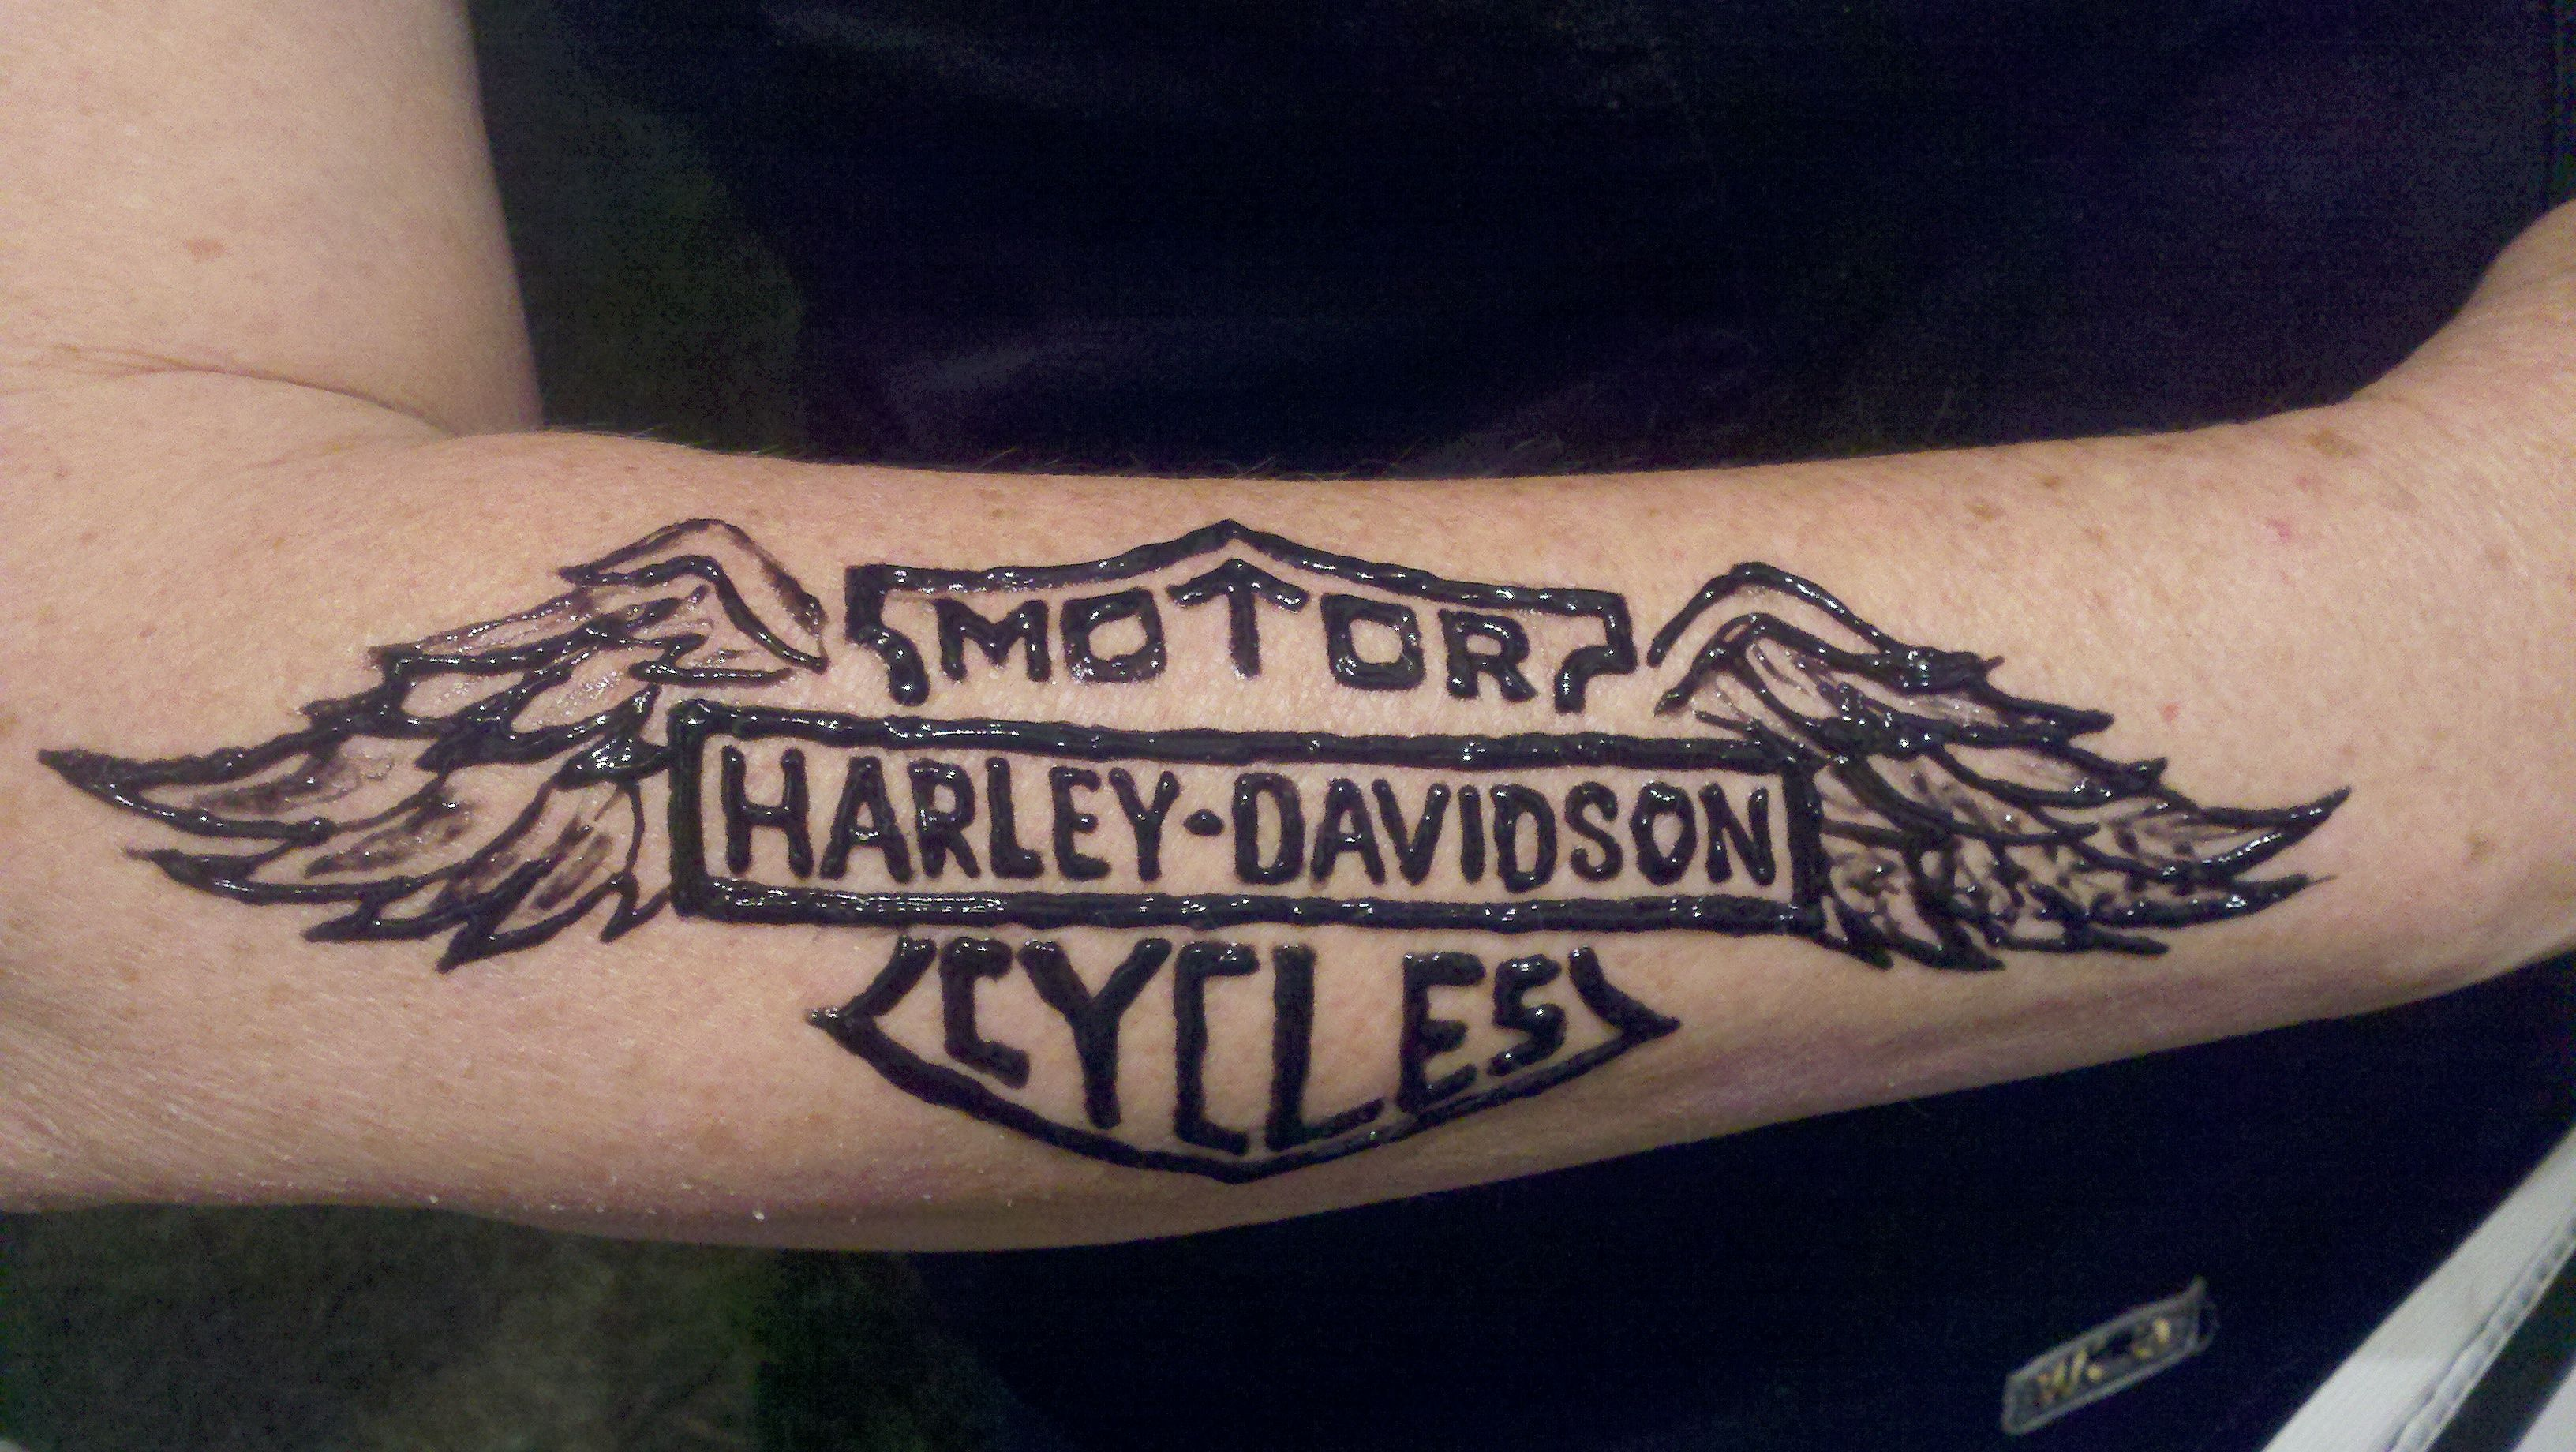 a2e6f7bd6 Harley Davidson Tattoo design Want this!! On the inside of my arm. :)